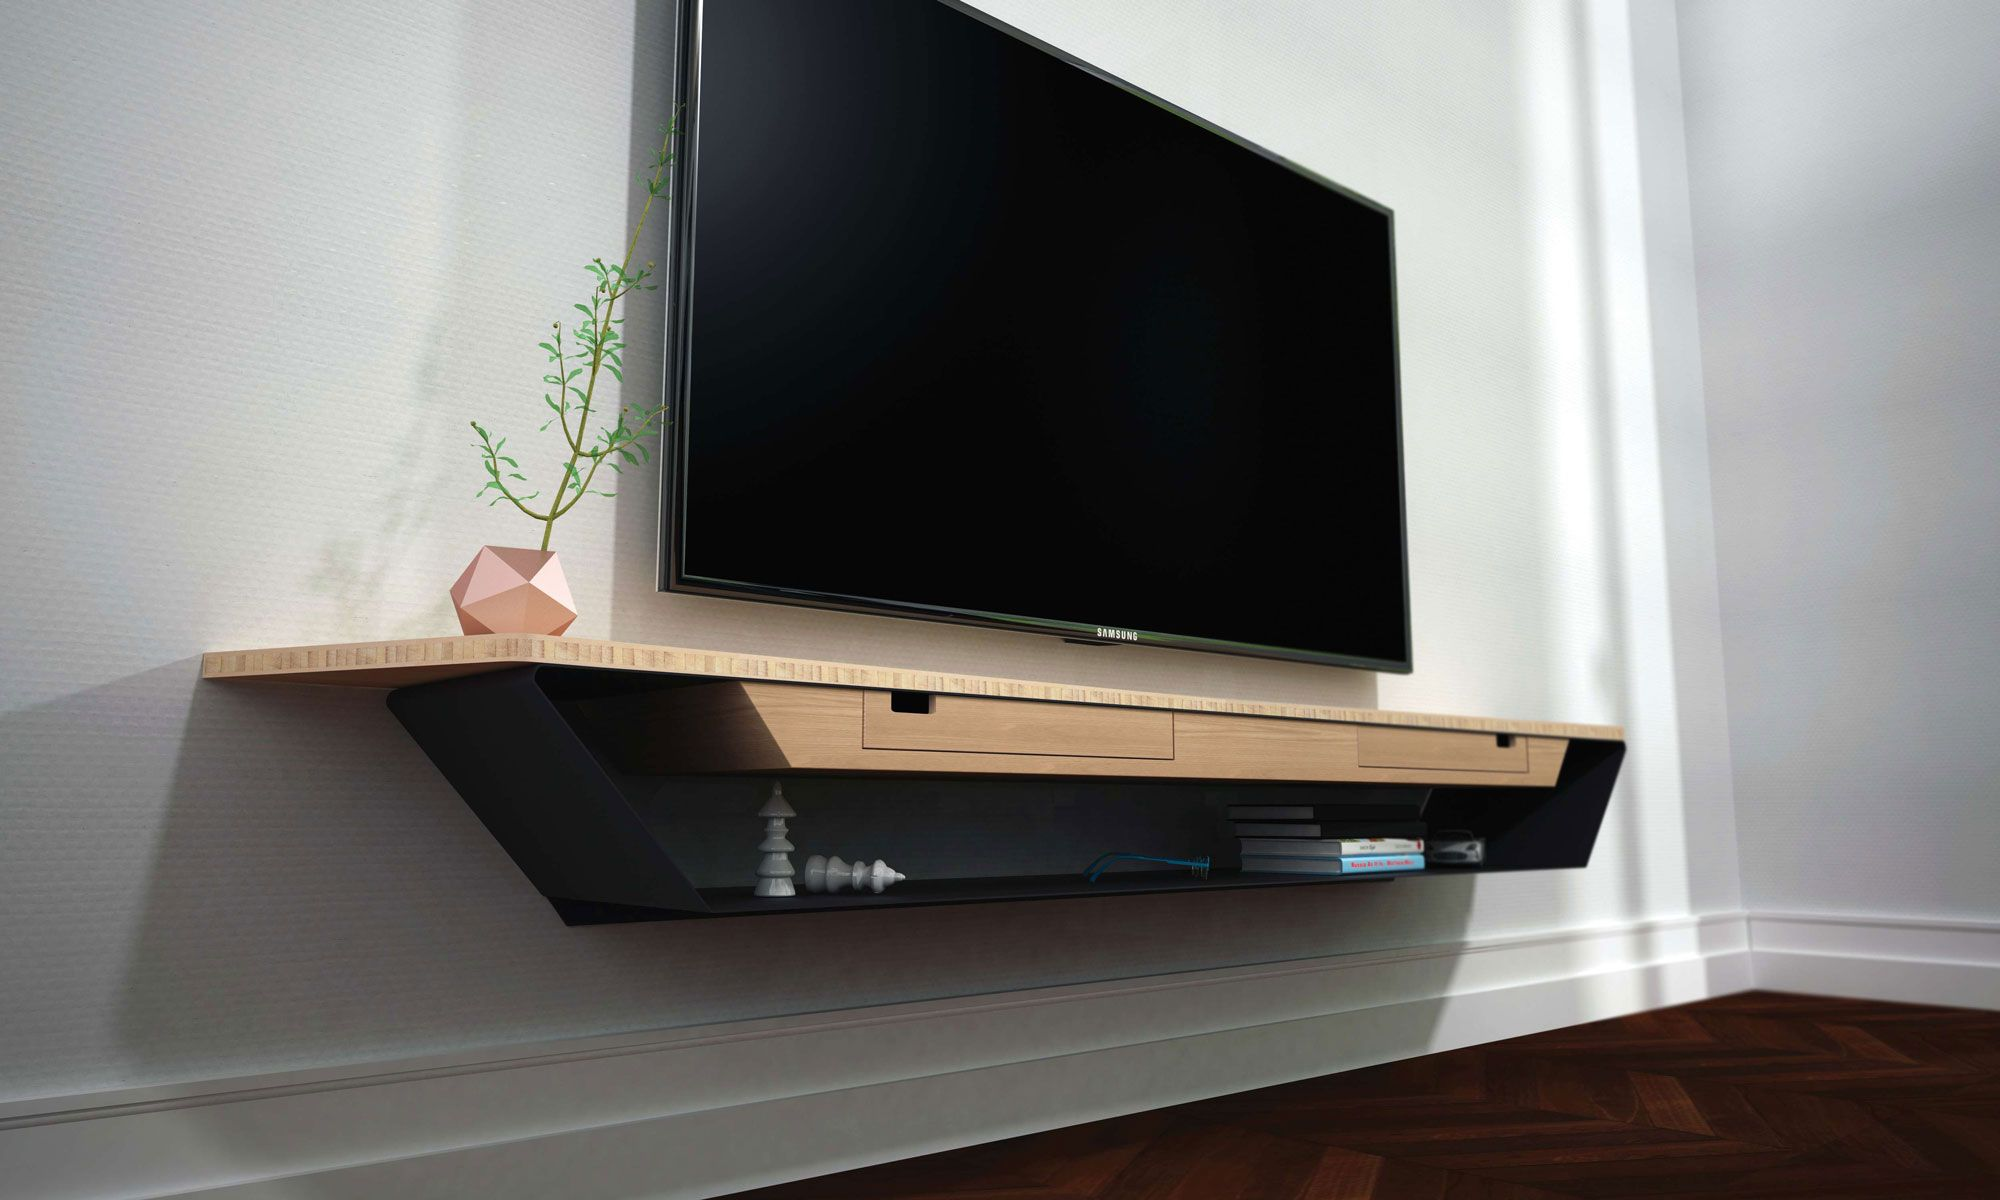 Meuble tv blanc suspendu alinea pin meuble tv design suspendu larmo new on pinterest tvs - Meuble tv alinea ...